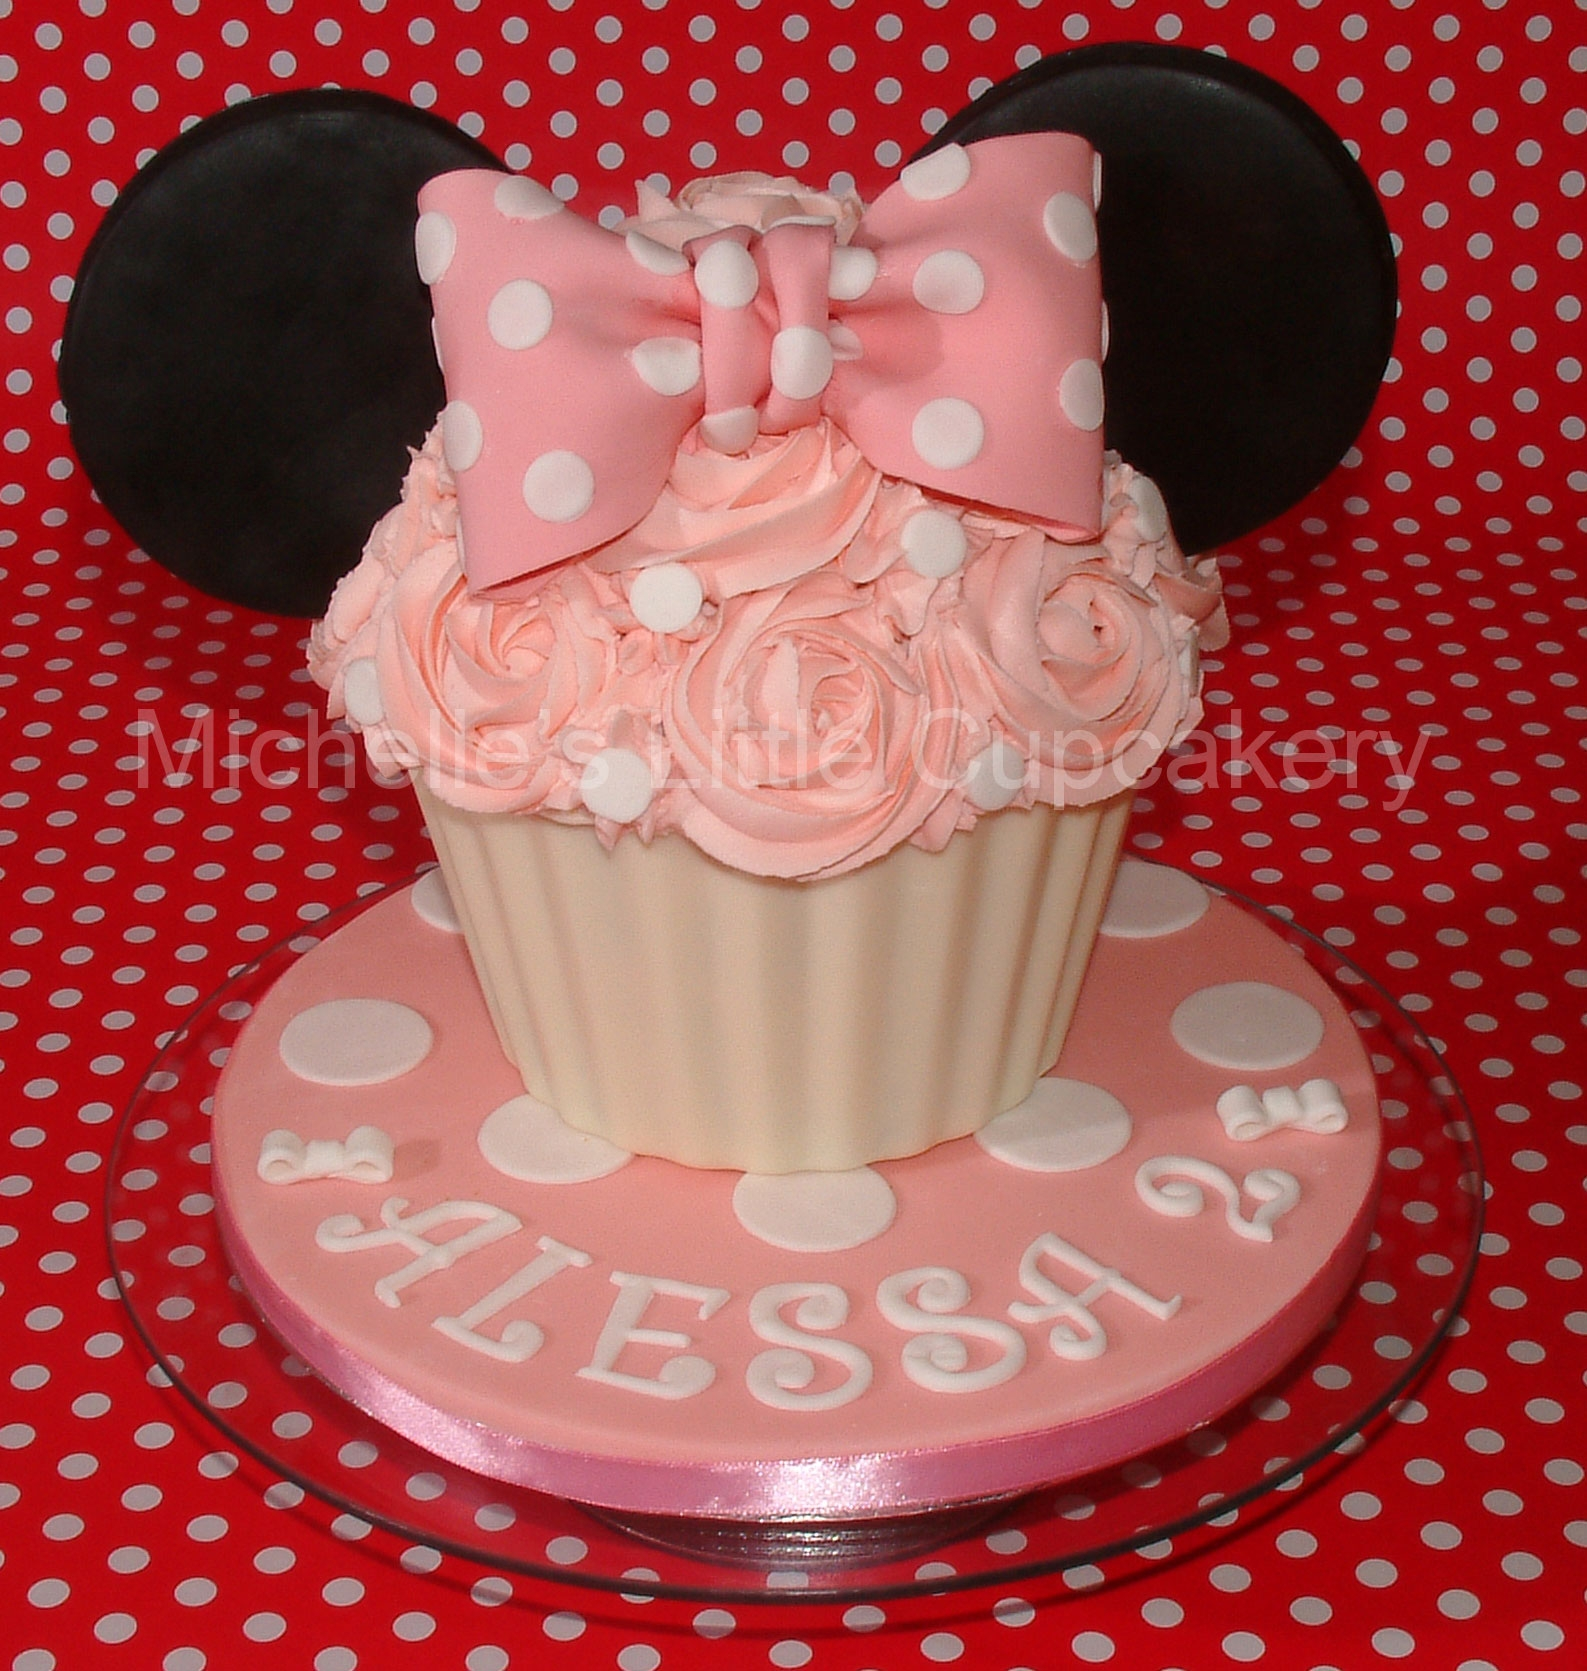 Minnie Mouse Inspired Giant Lemon Cupcake Minnie Mouse inspired giant lemon cupcake.